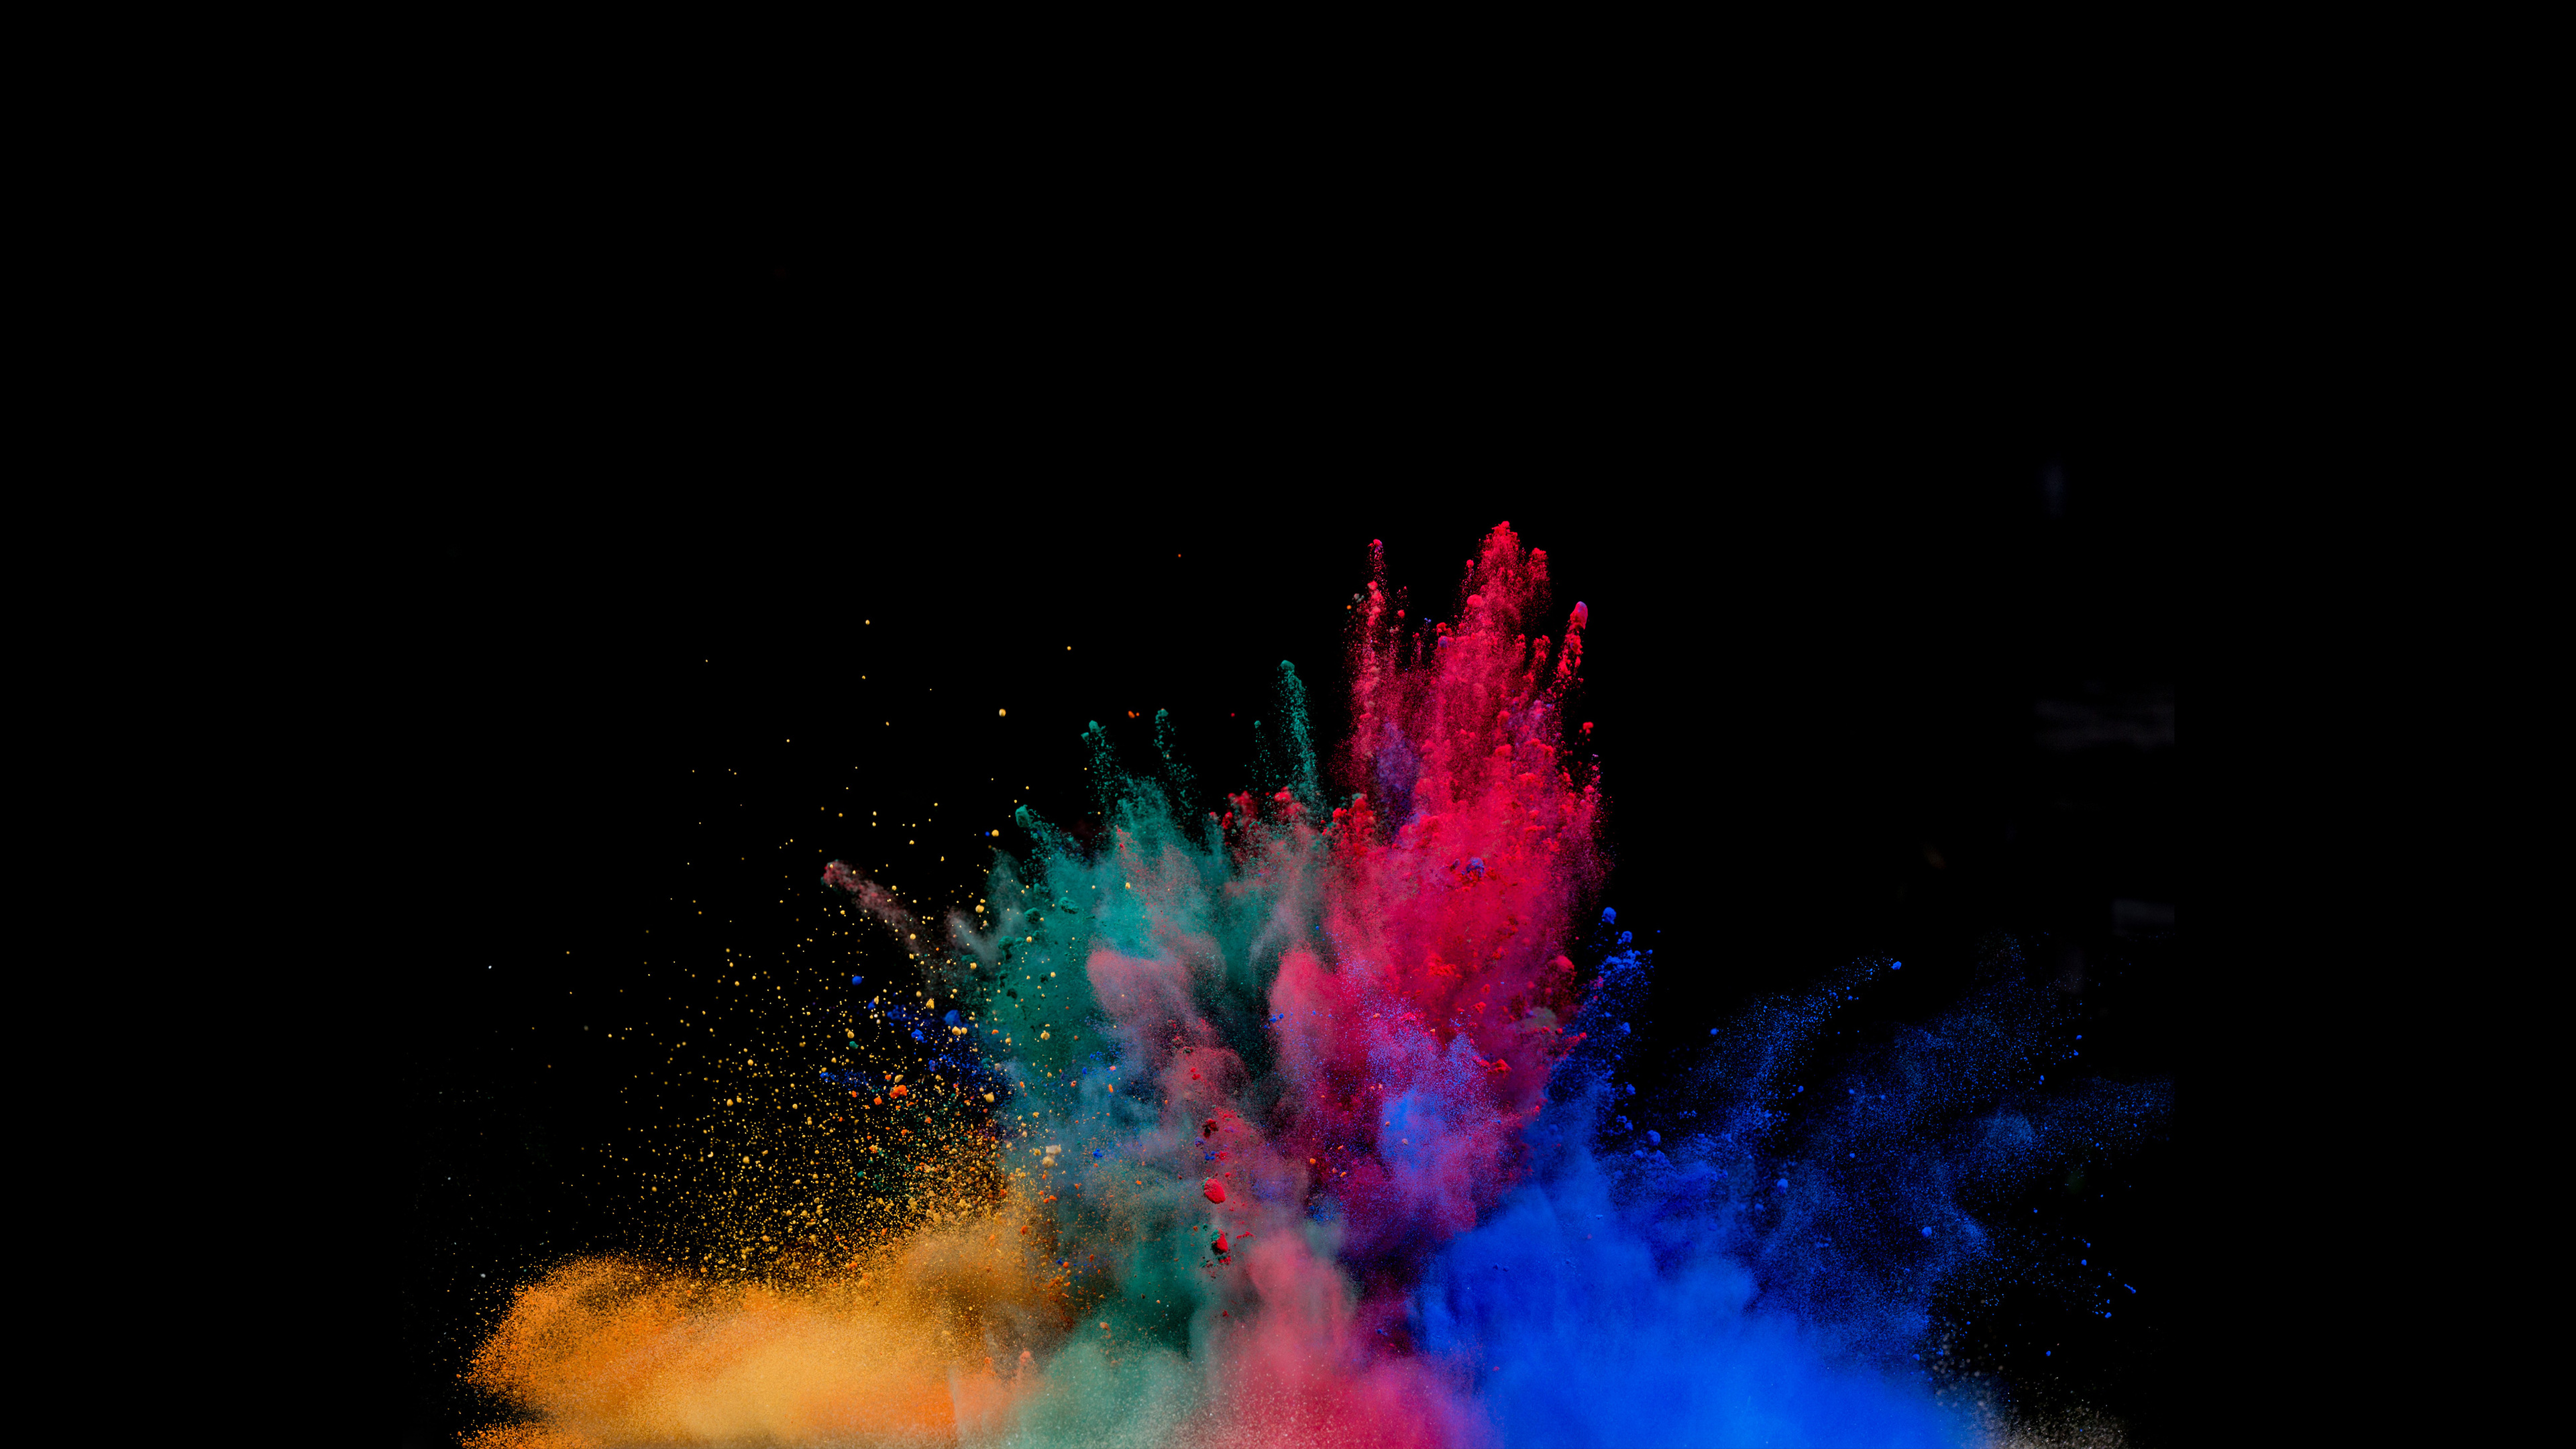 3840x2160 Colorful Powder Explosion 4k Hd 4k Wallpapers